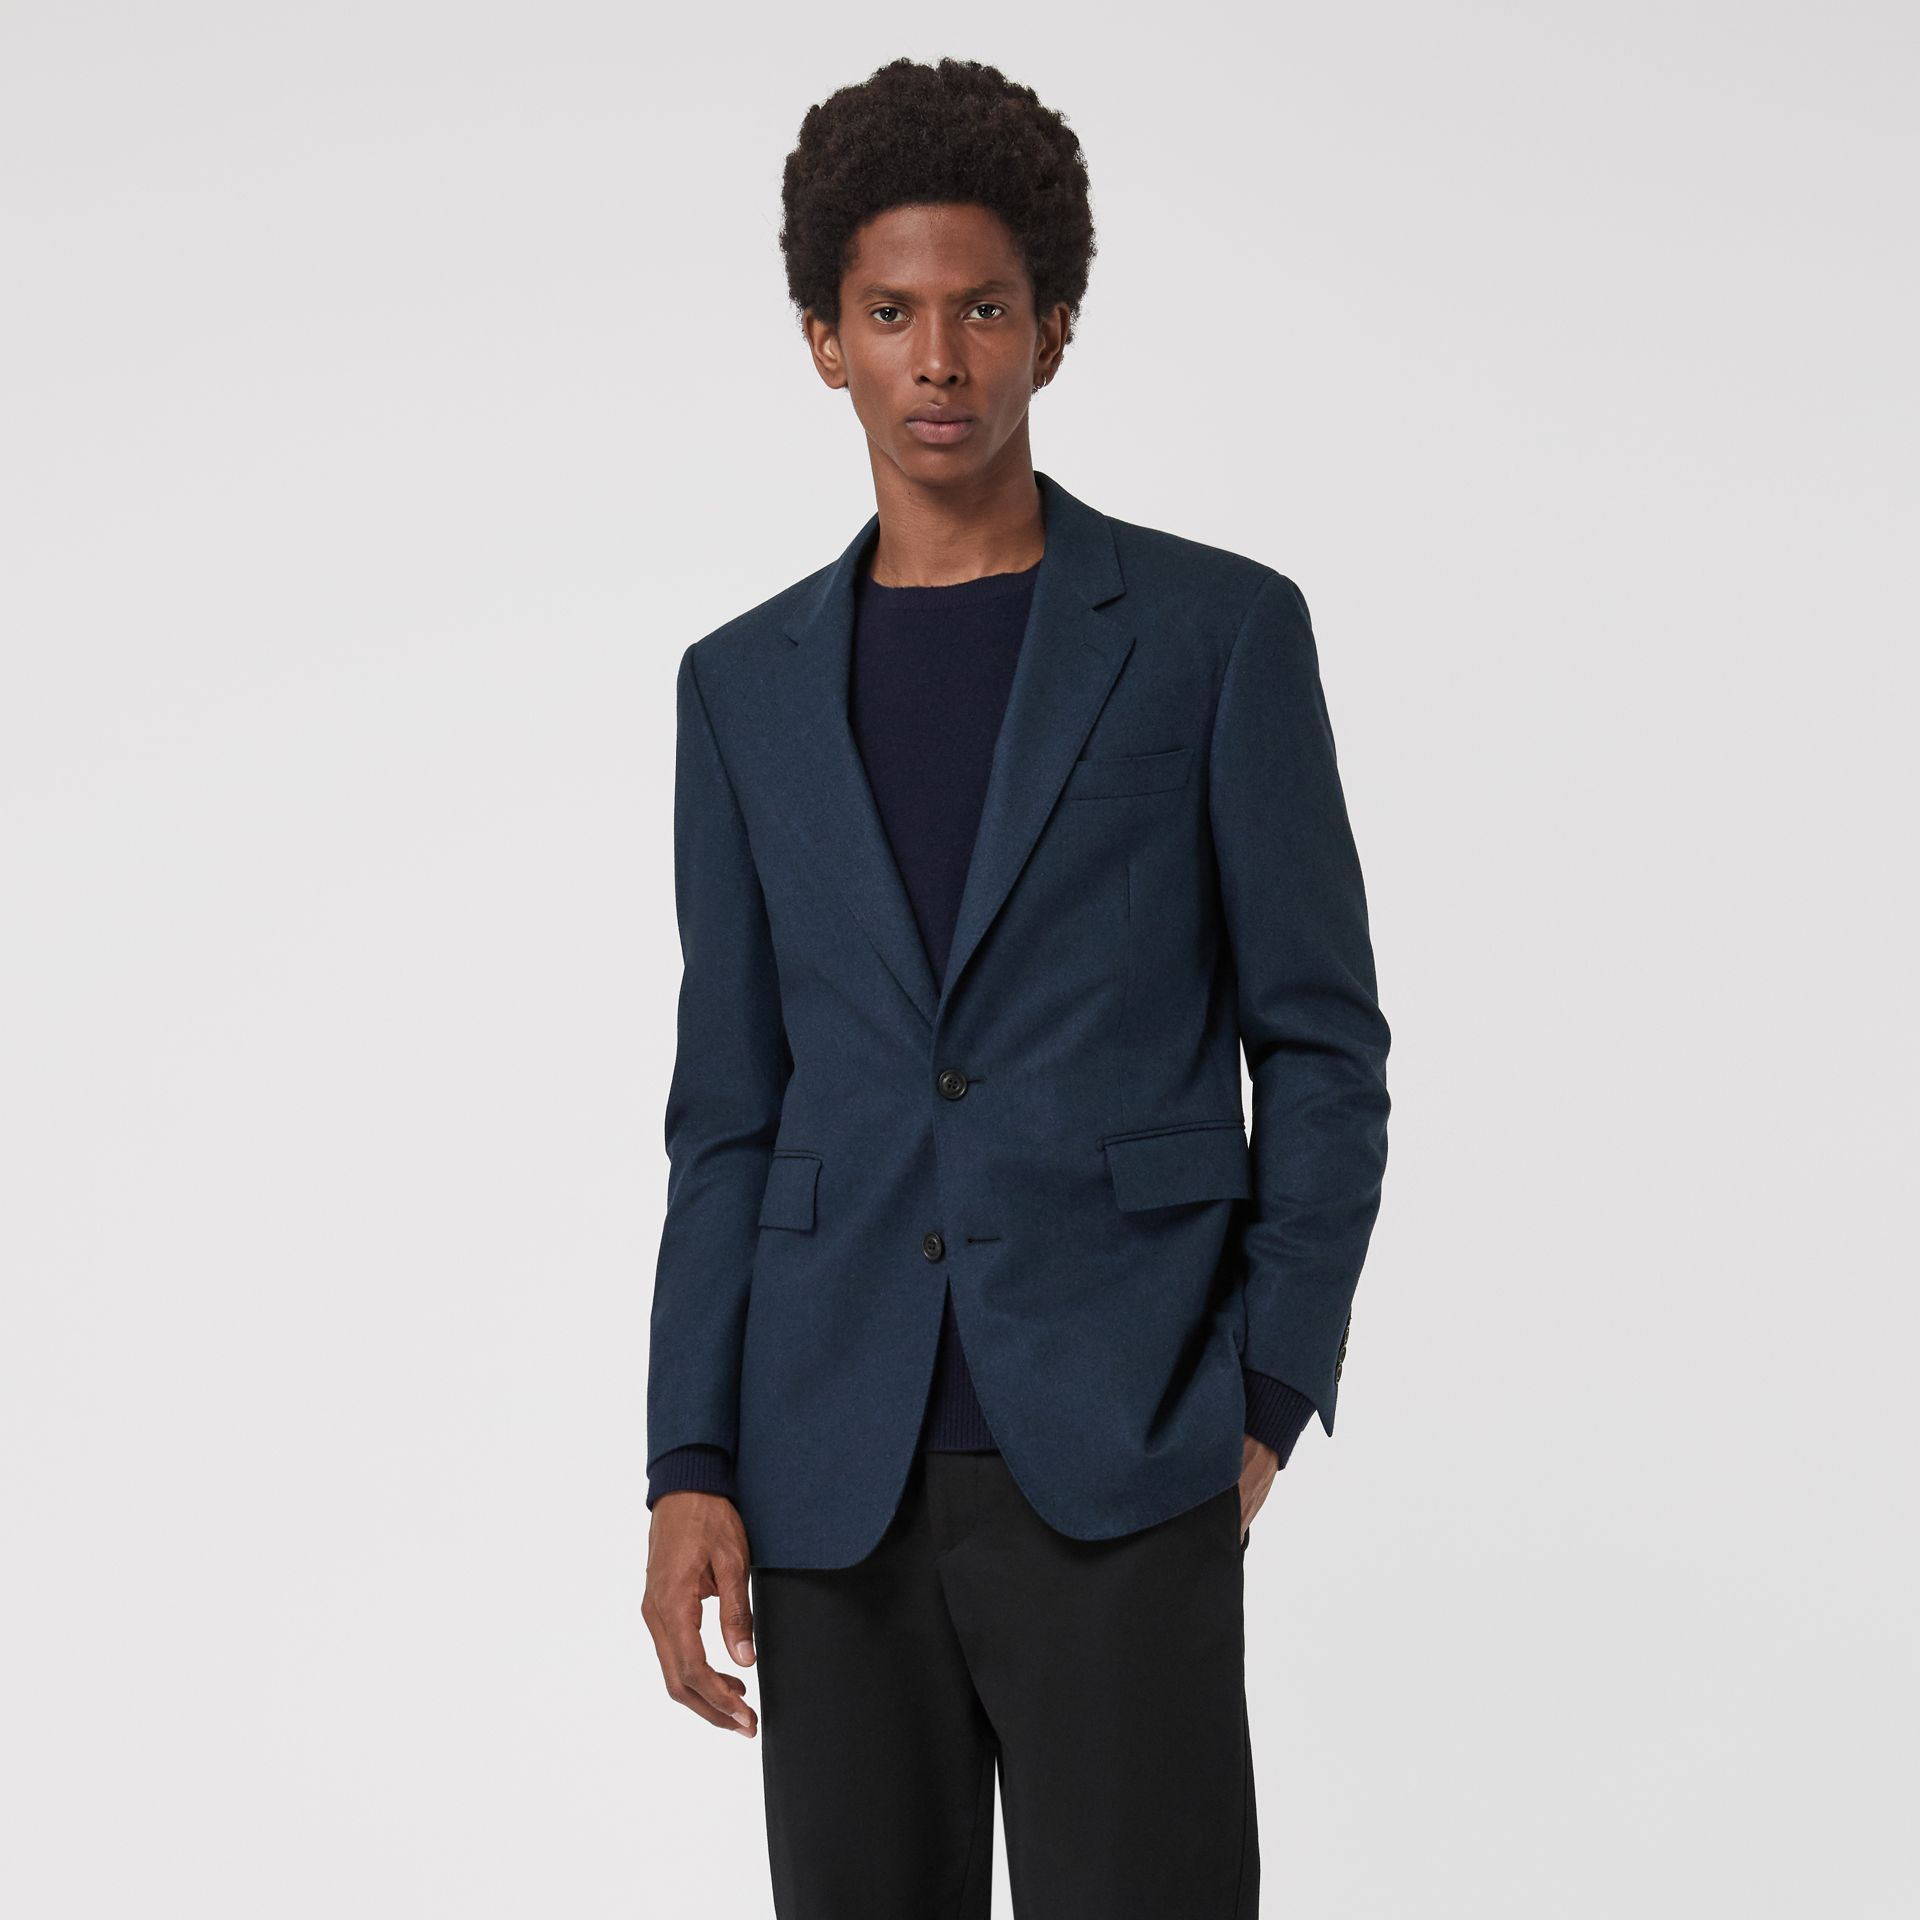 Classic Fit Wool Cashmere Tailored Jacket in Dark Teal - Men | Burberry Canada - gallery image 5